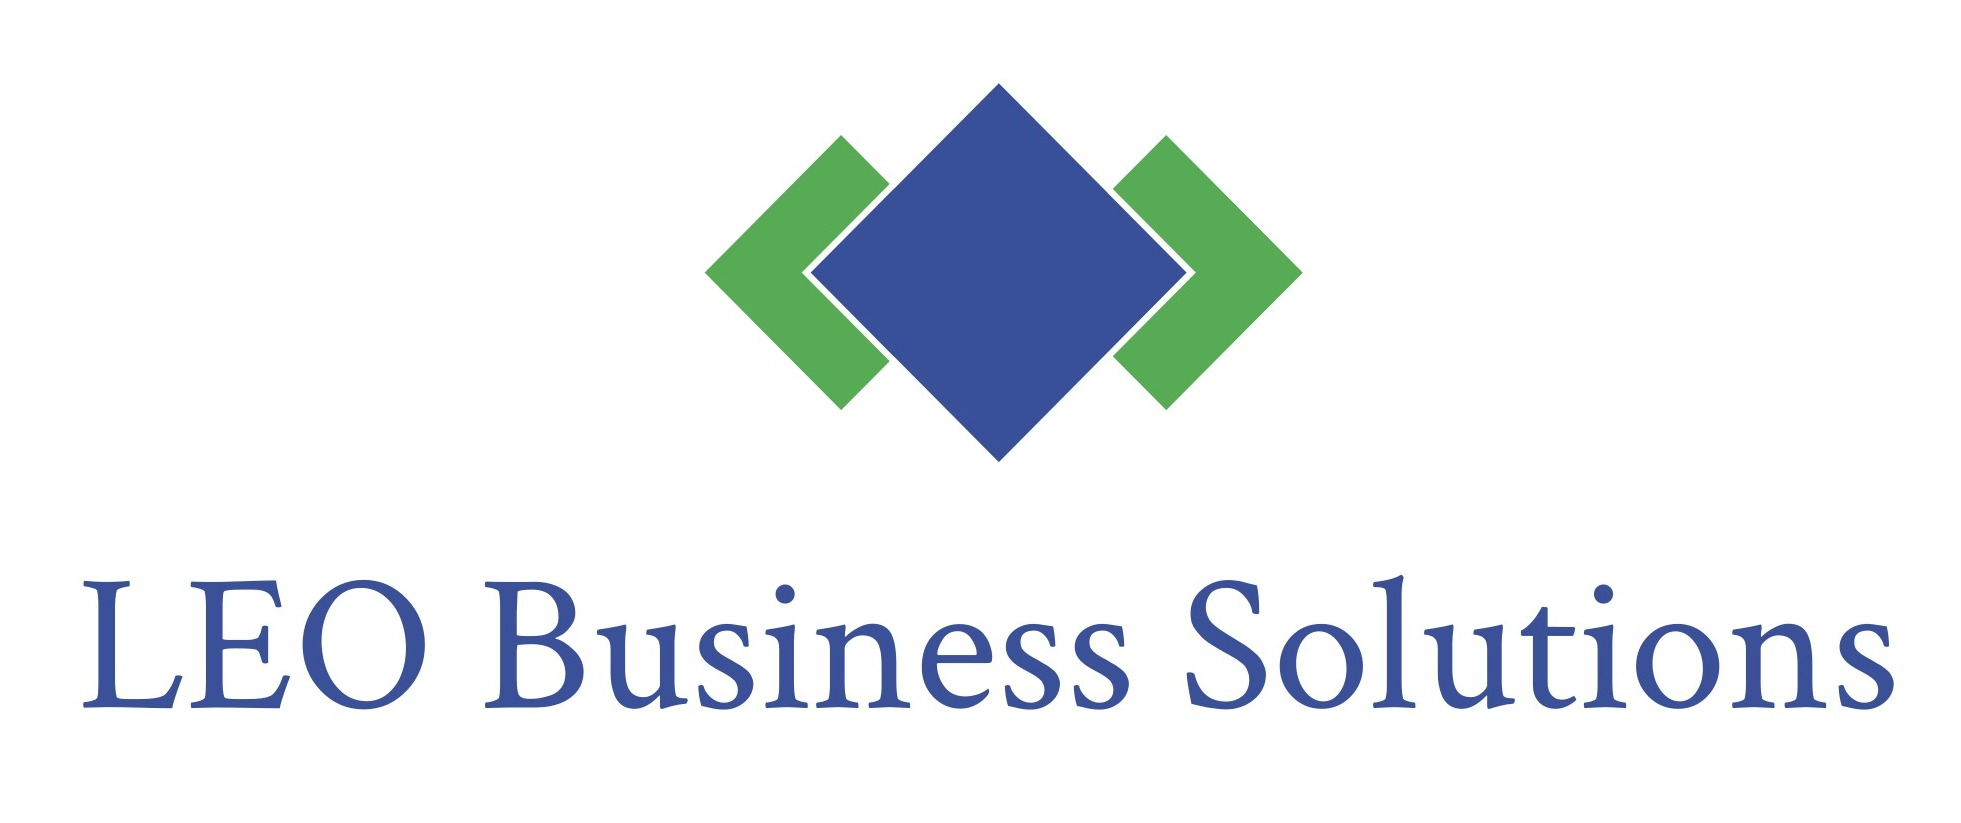 LEO Business Solutions LLC